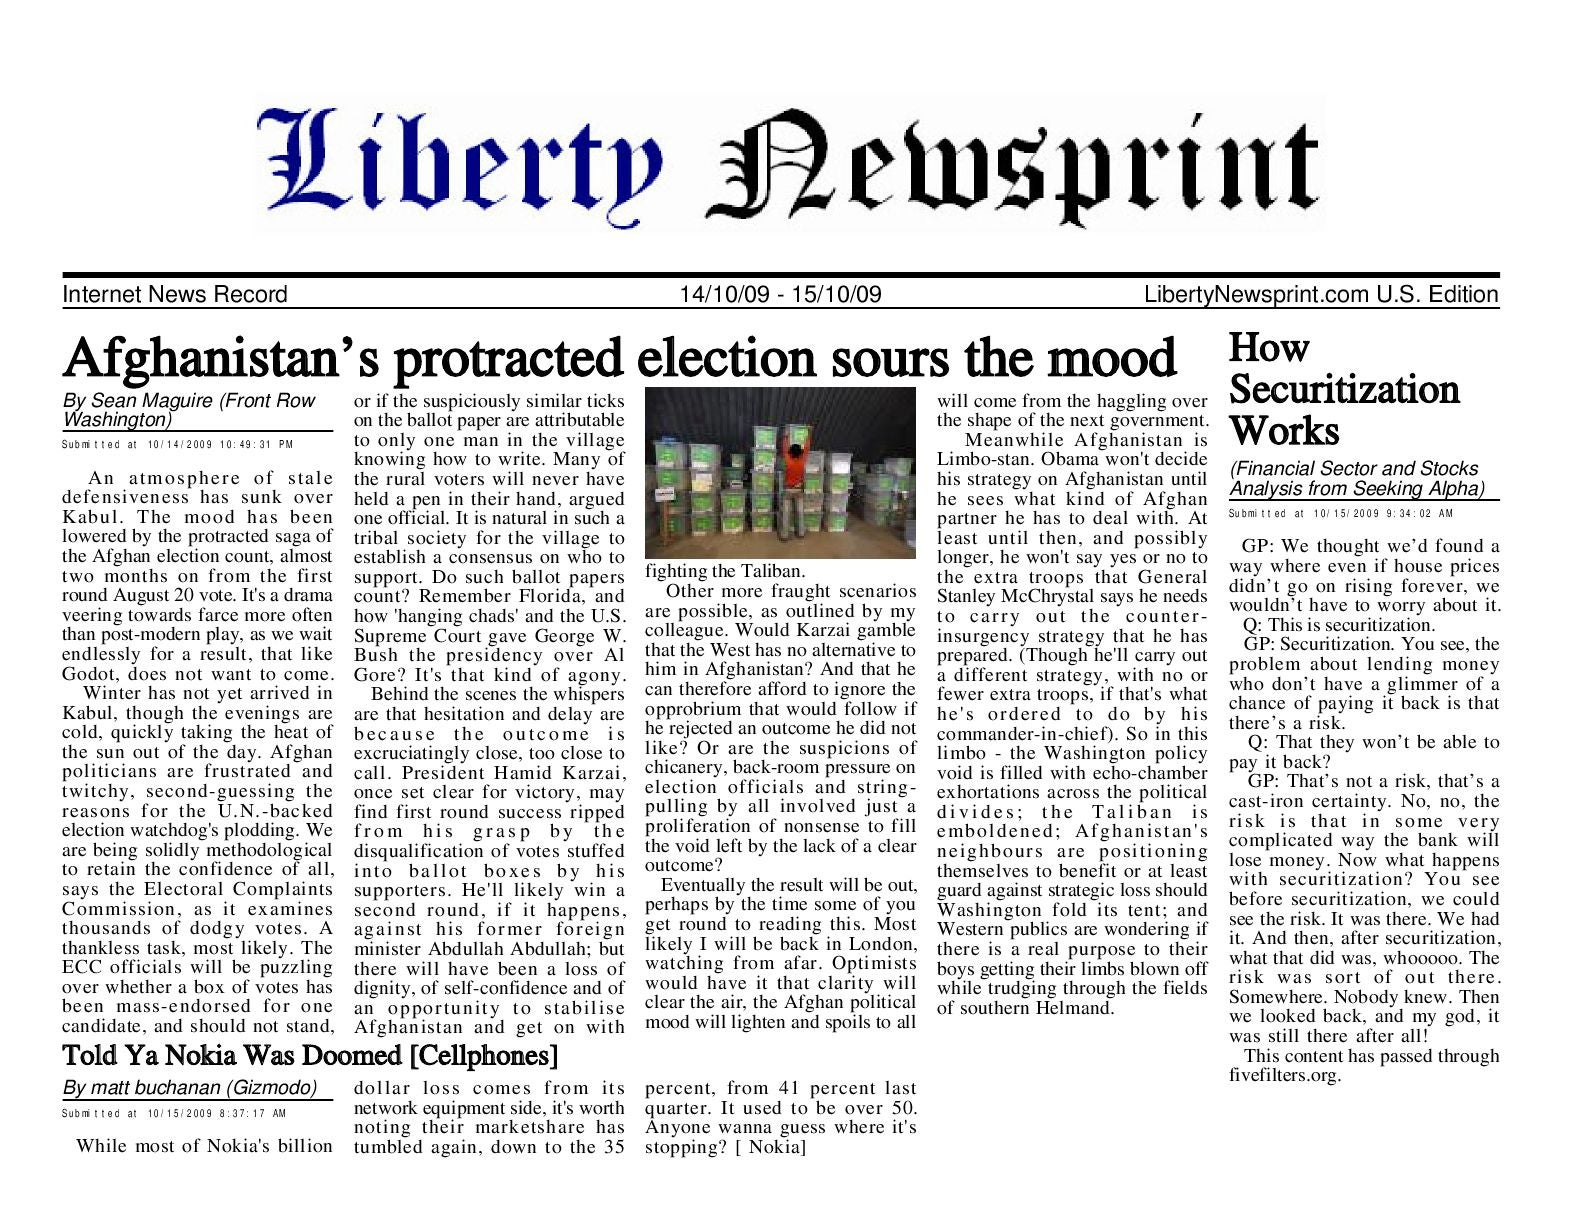 Lnp Oct 15 09 By Liberty Newspost Issuu Circuit Bent Modified Toy Festival Ponoko